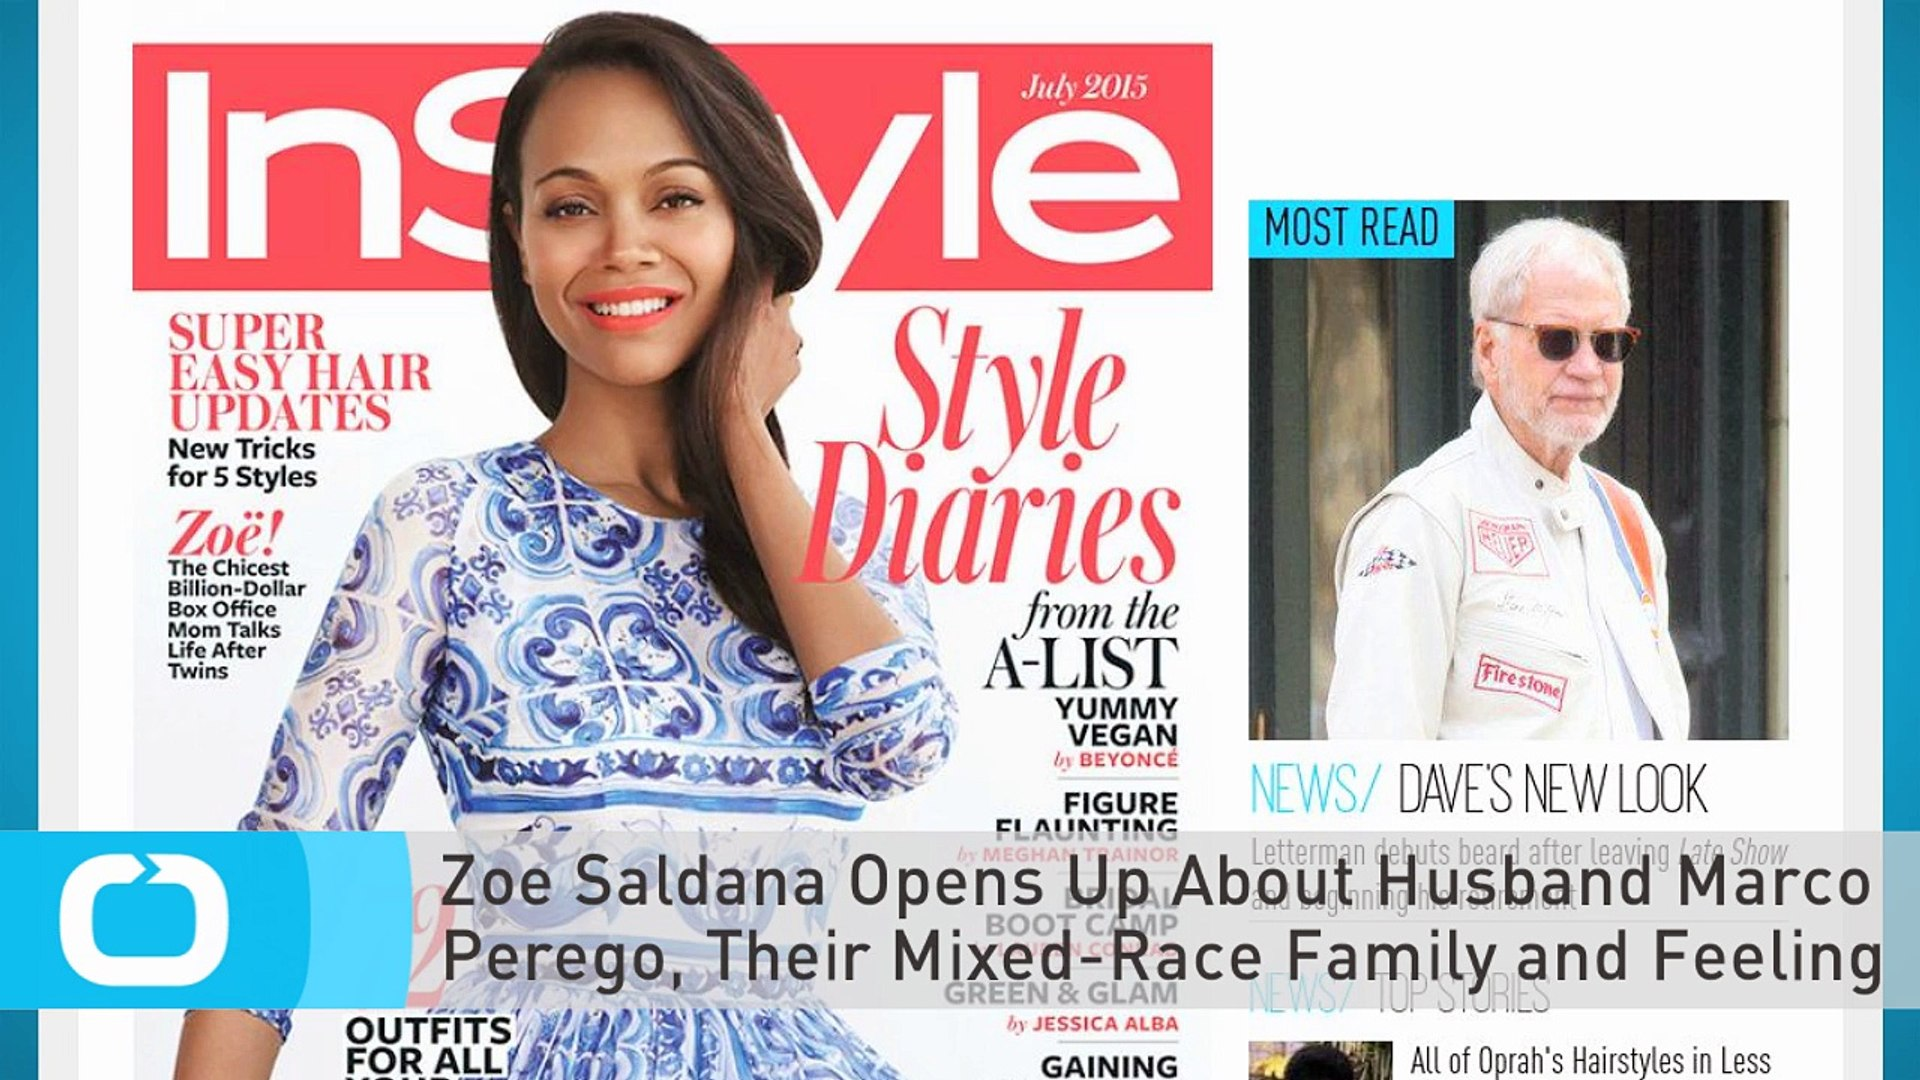 Zoe Saldana Opens Up About Husband Marco Perego Their Mixed Race Family And Feeling